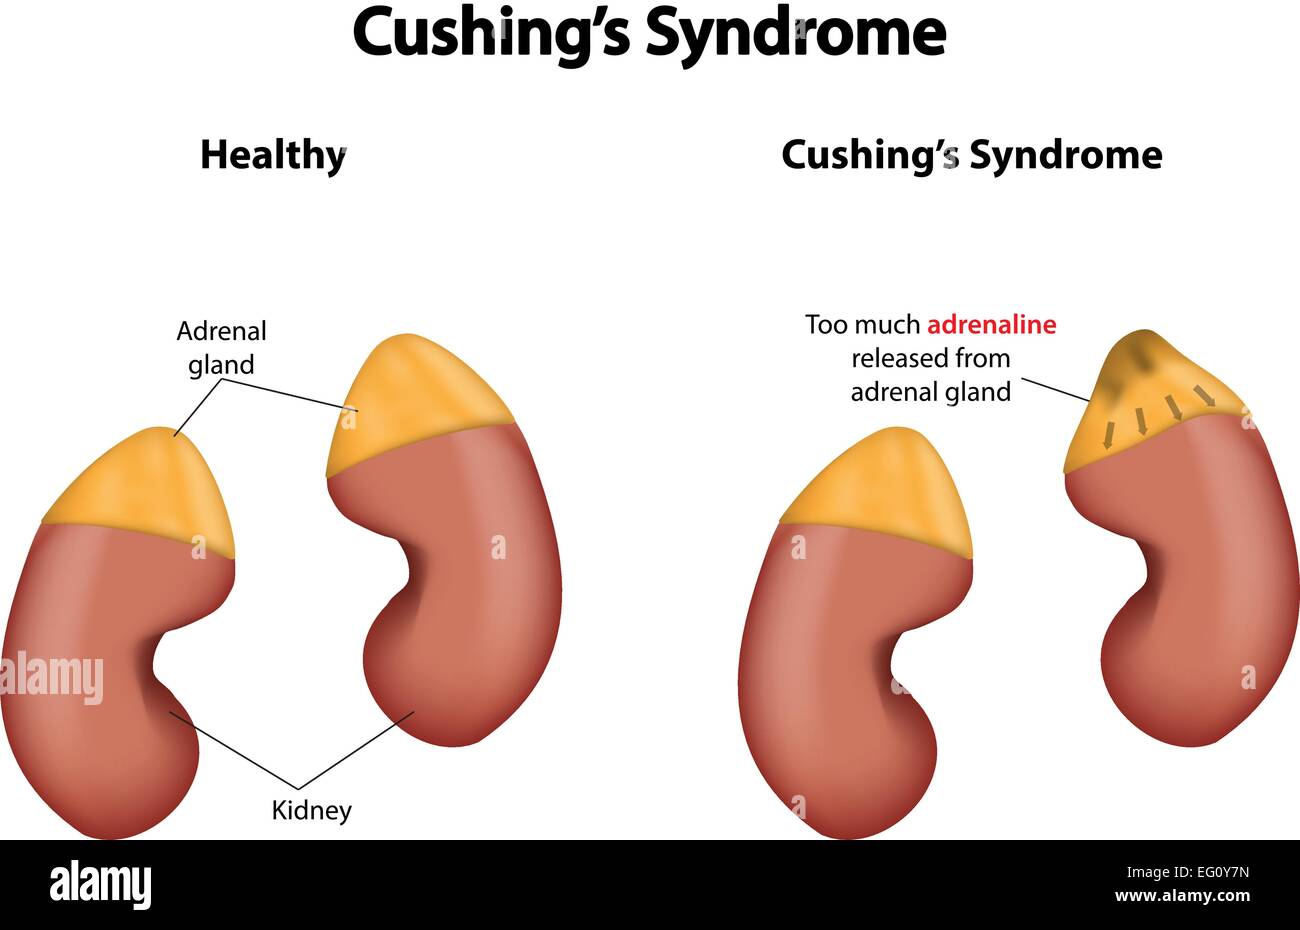 cushings disease Cushing's disease is a naturally occurring syndrome, but it can also be caused by administering excessive amounts of prednisone or dexamethasone for prolonged periods.